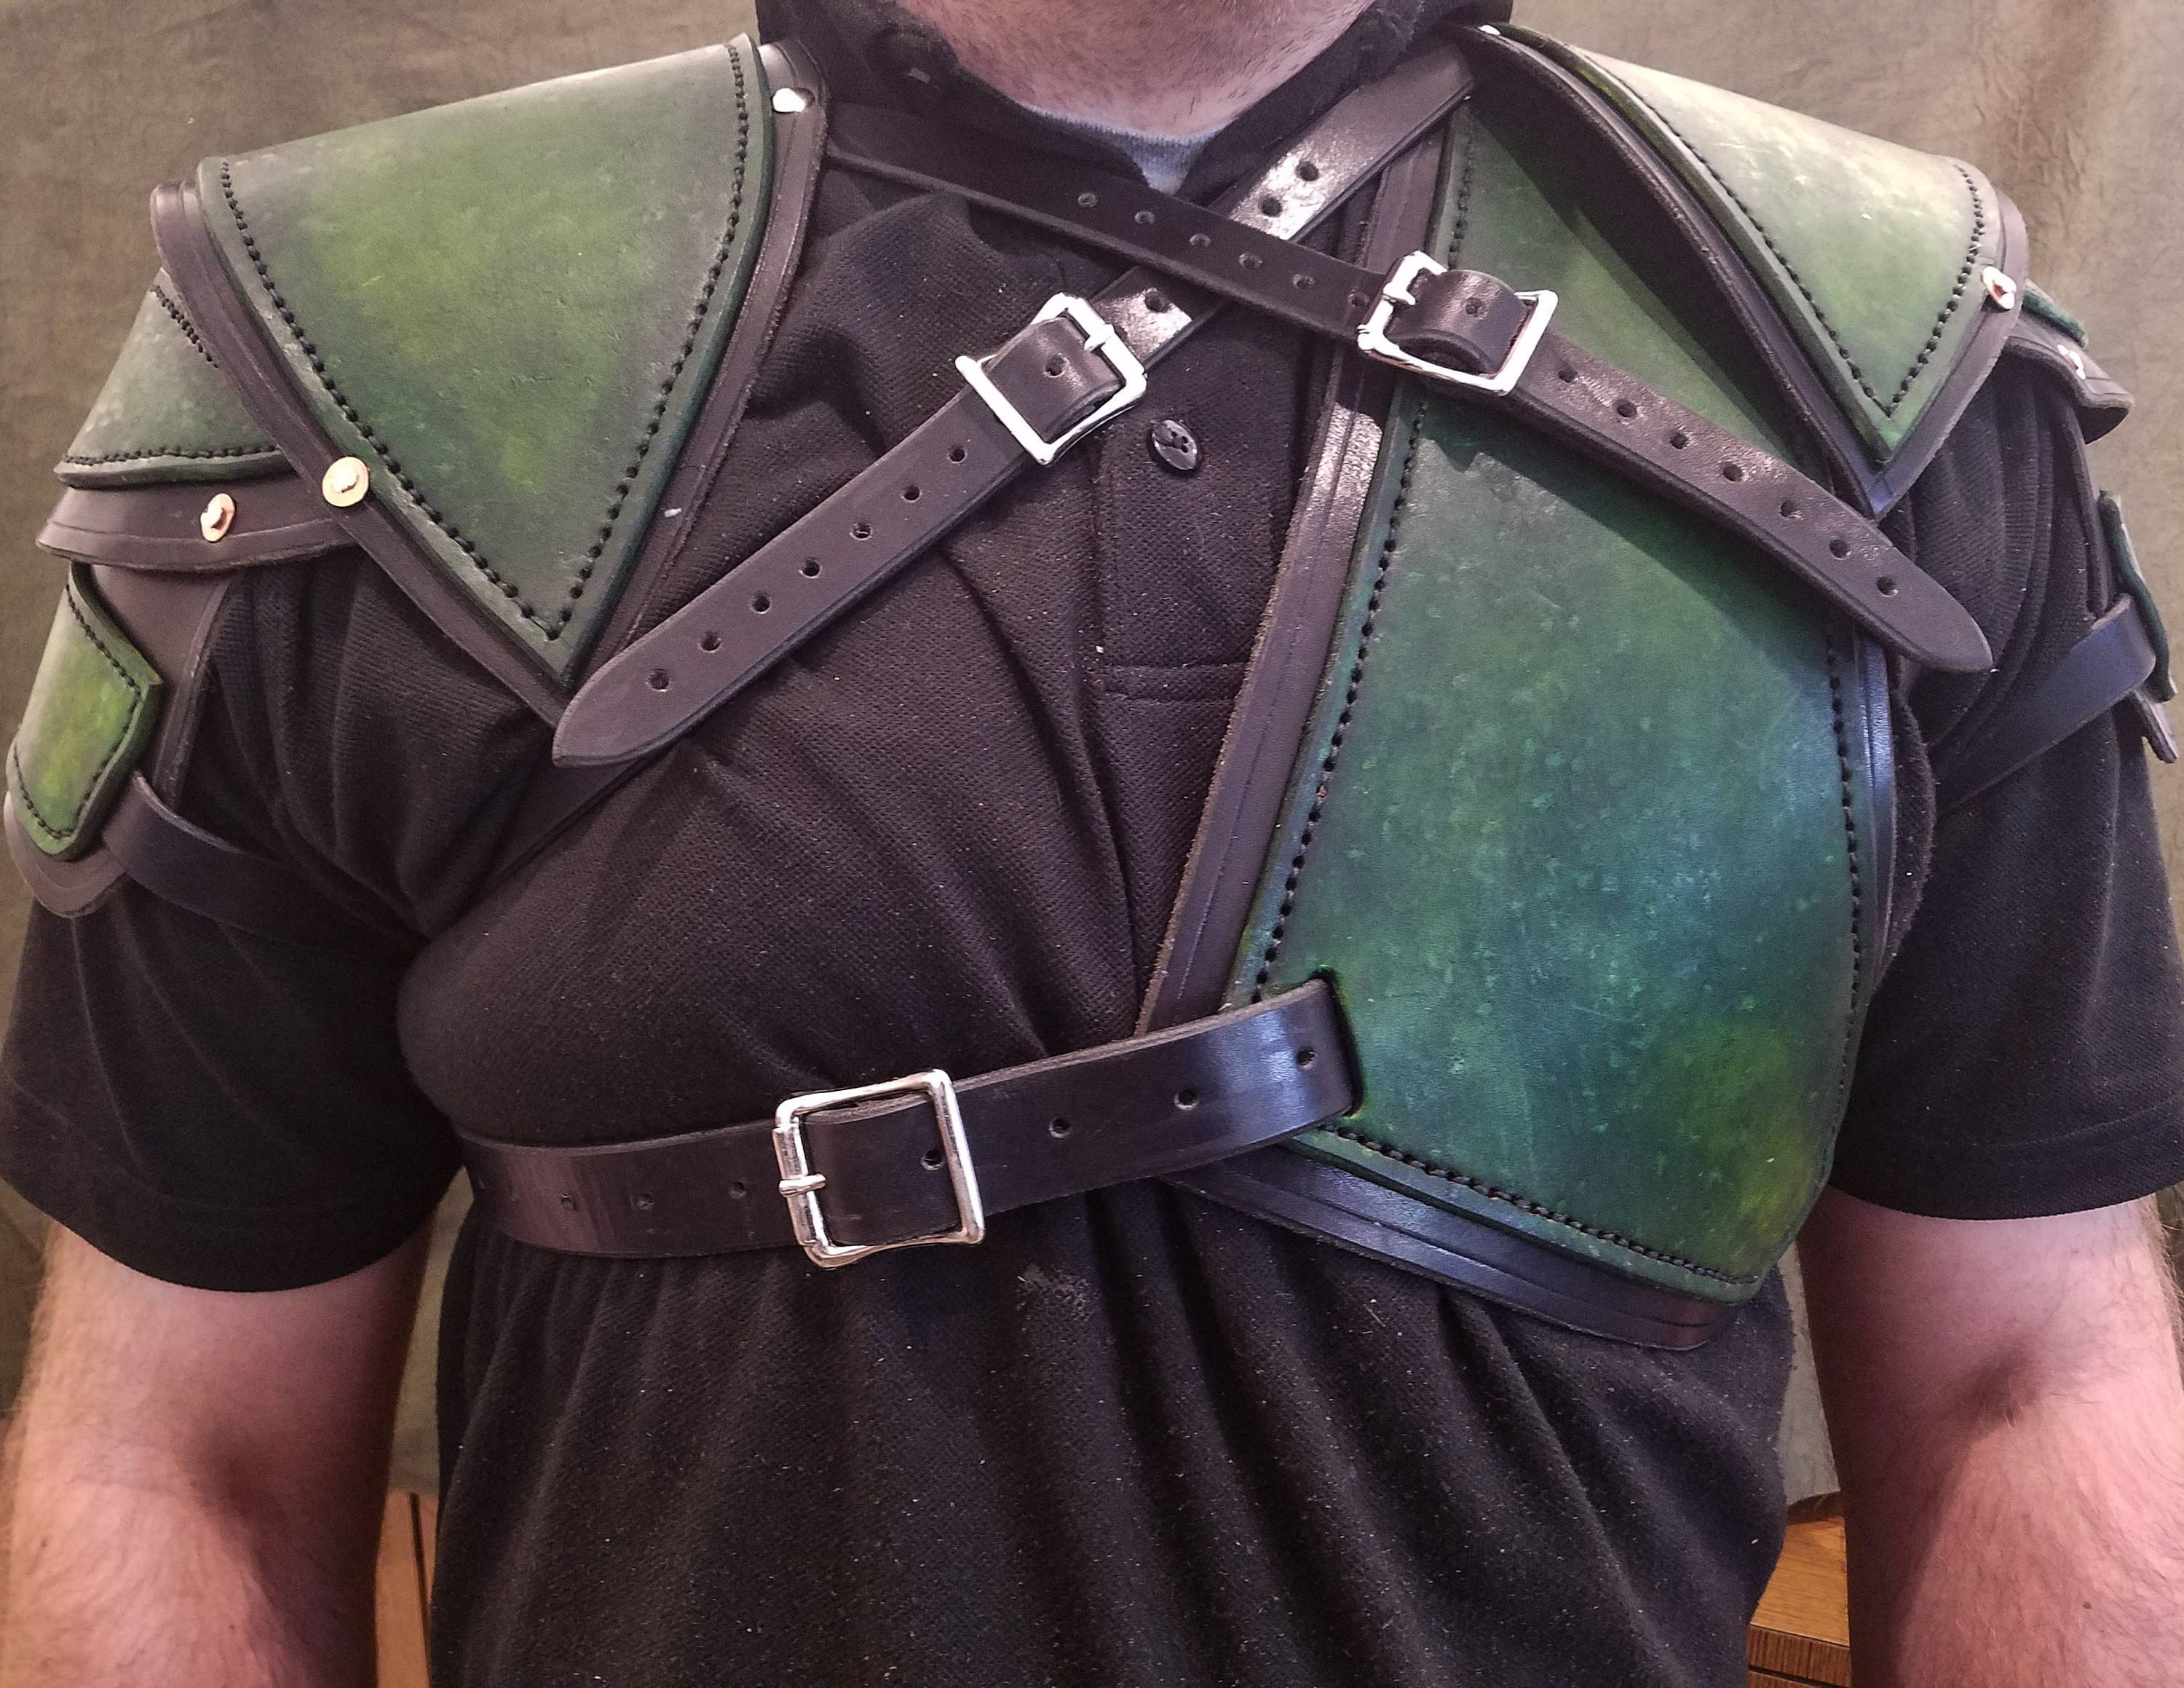 Dark green overlay on some body armor